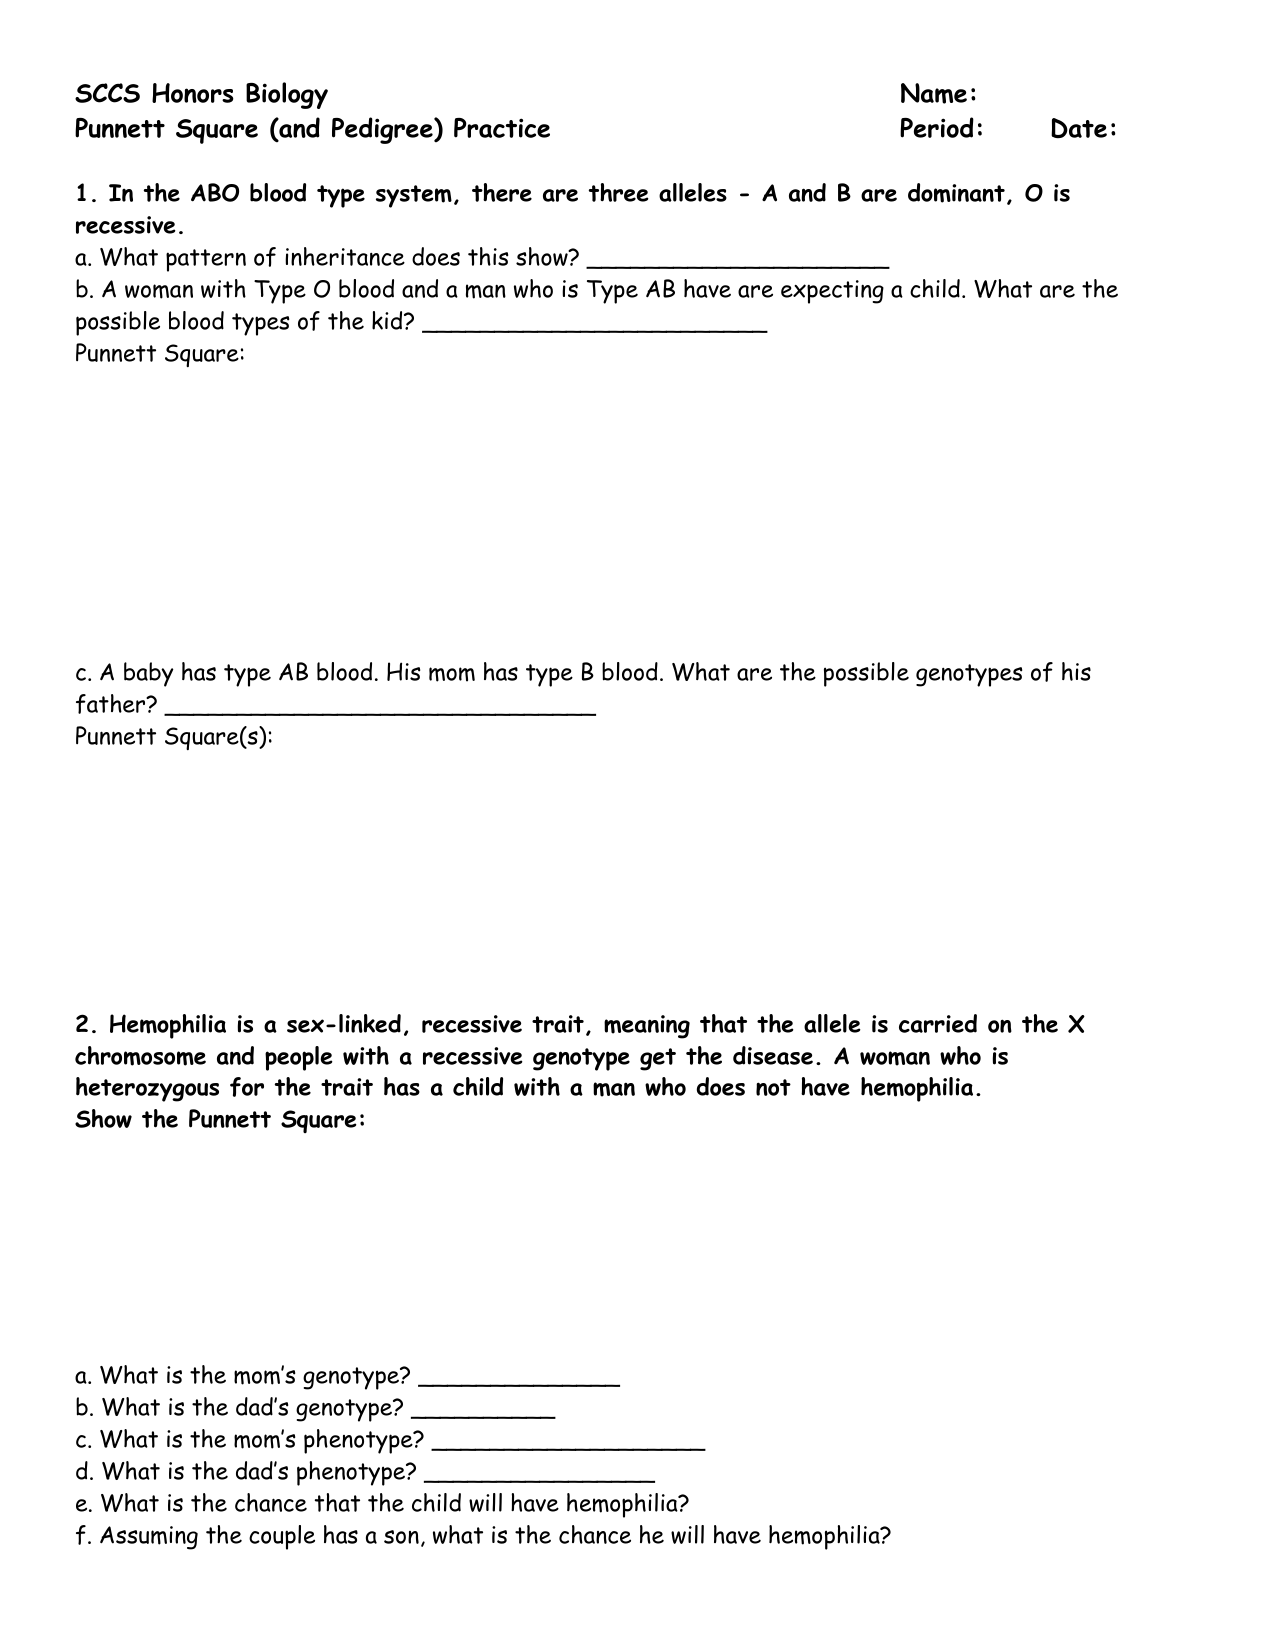 Pedigrees Practice Worksheet Answers